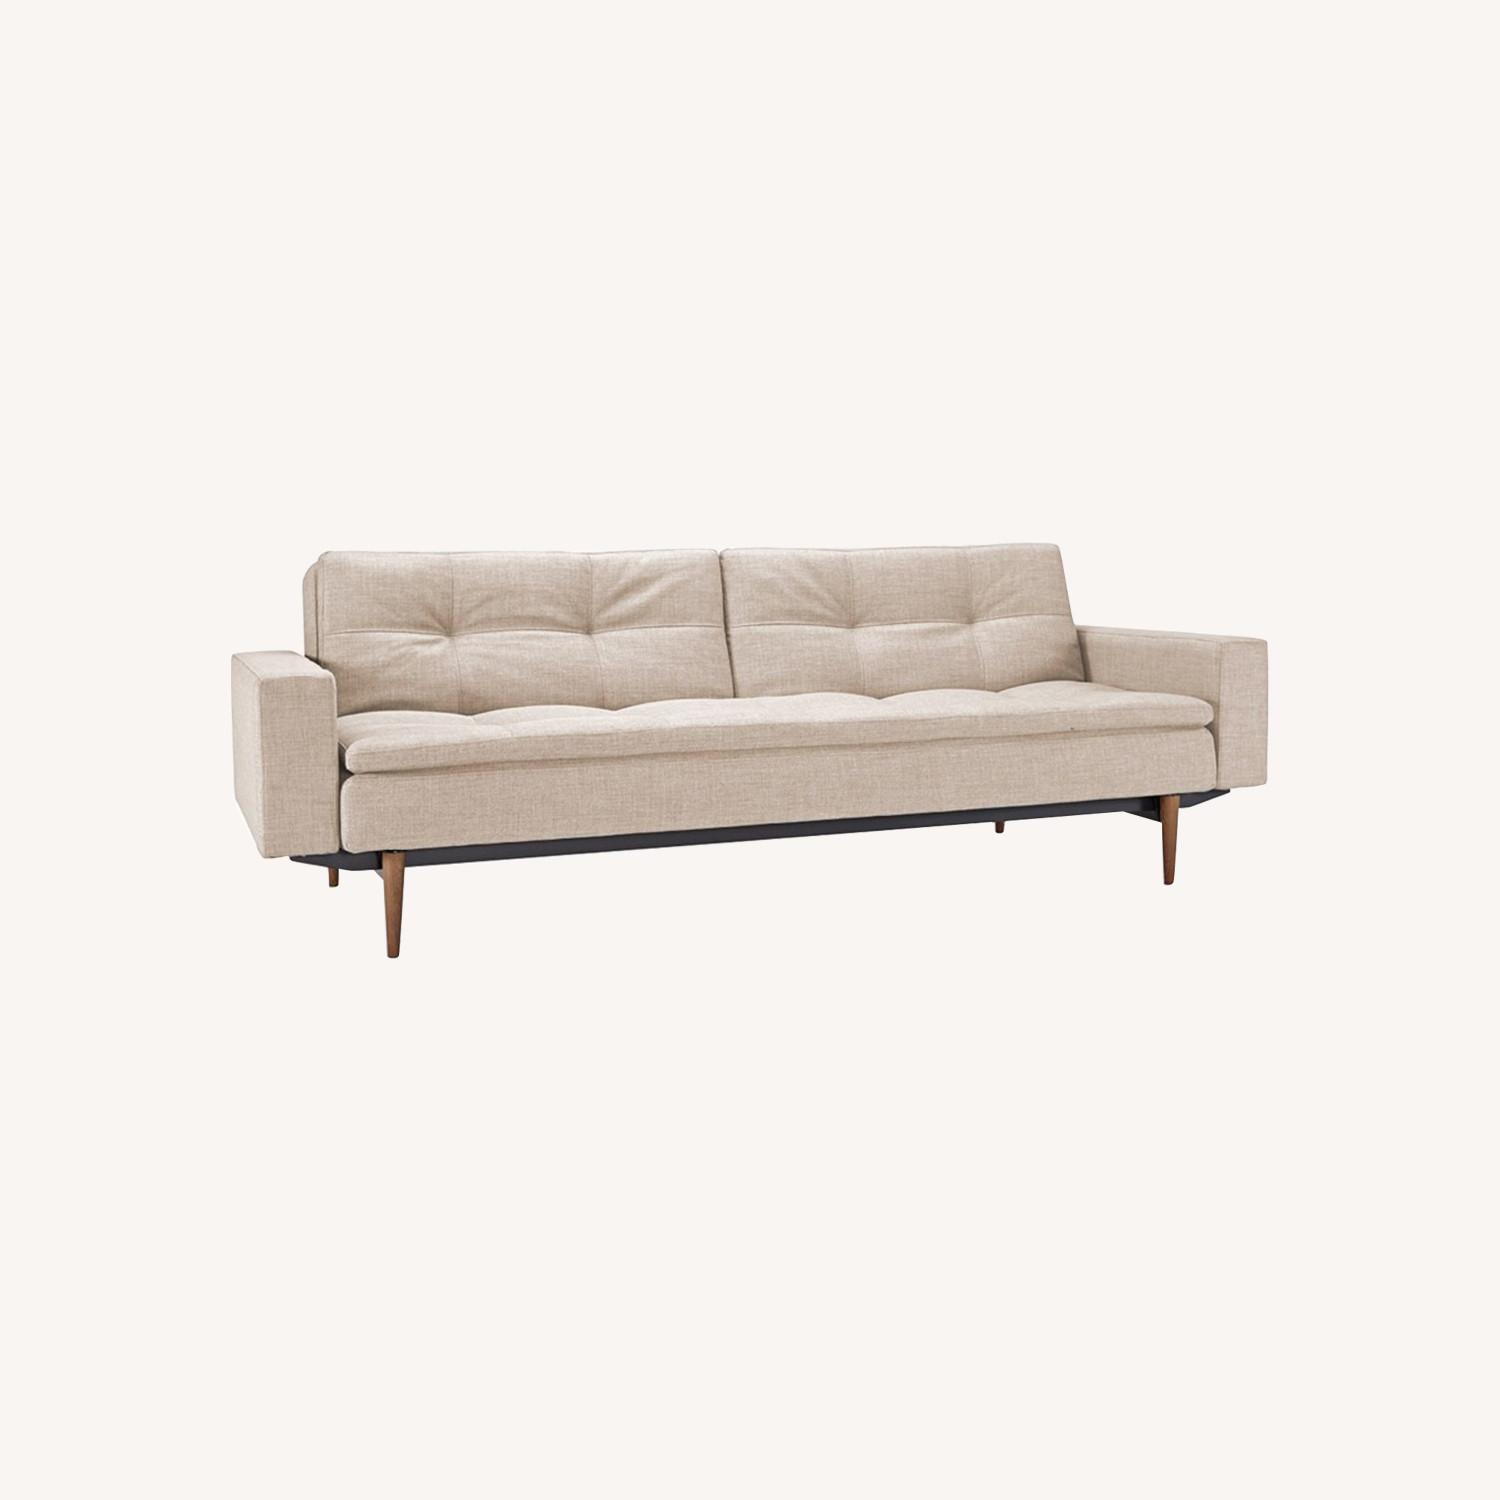 Dublexo Styletto Sofa with Arms - image-0